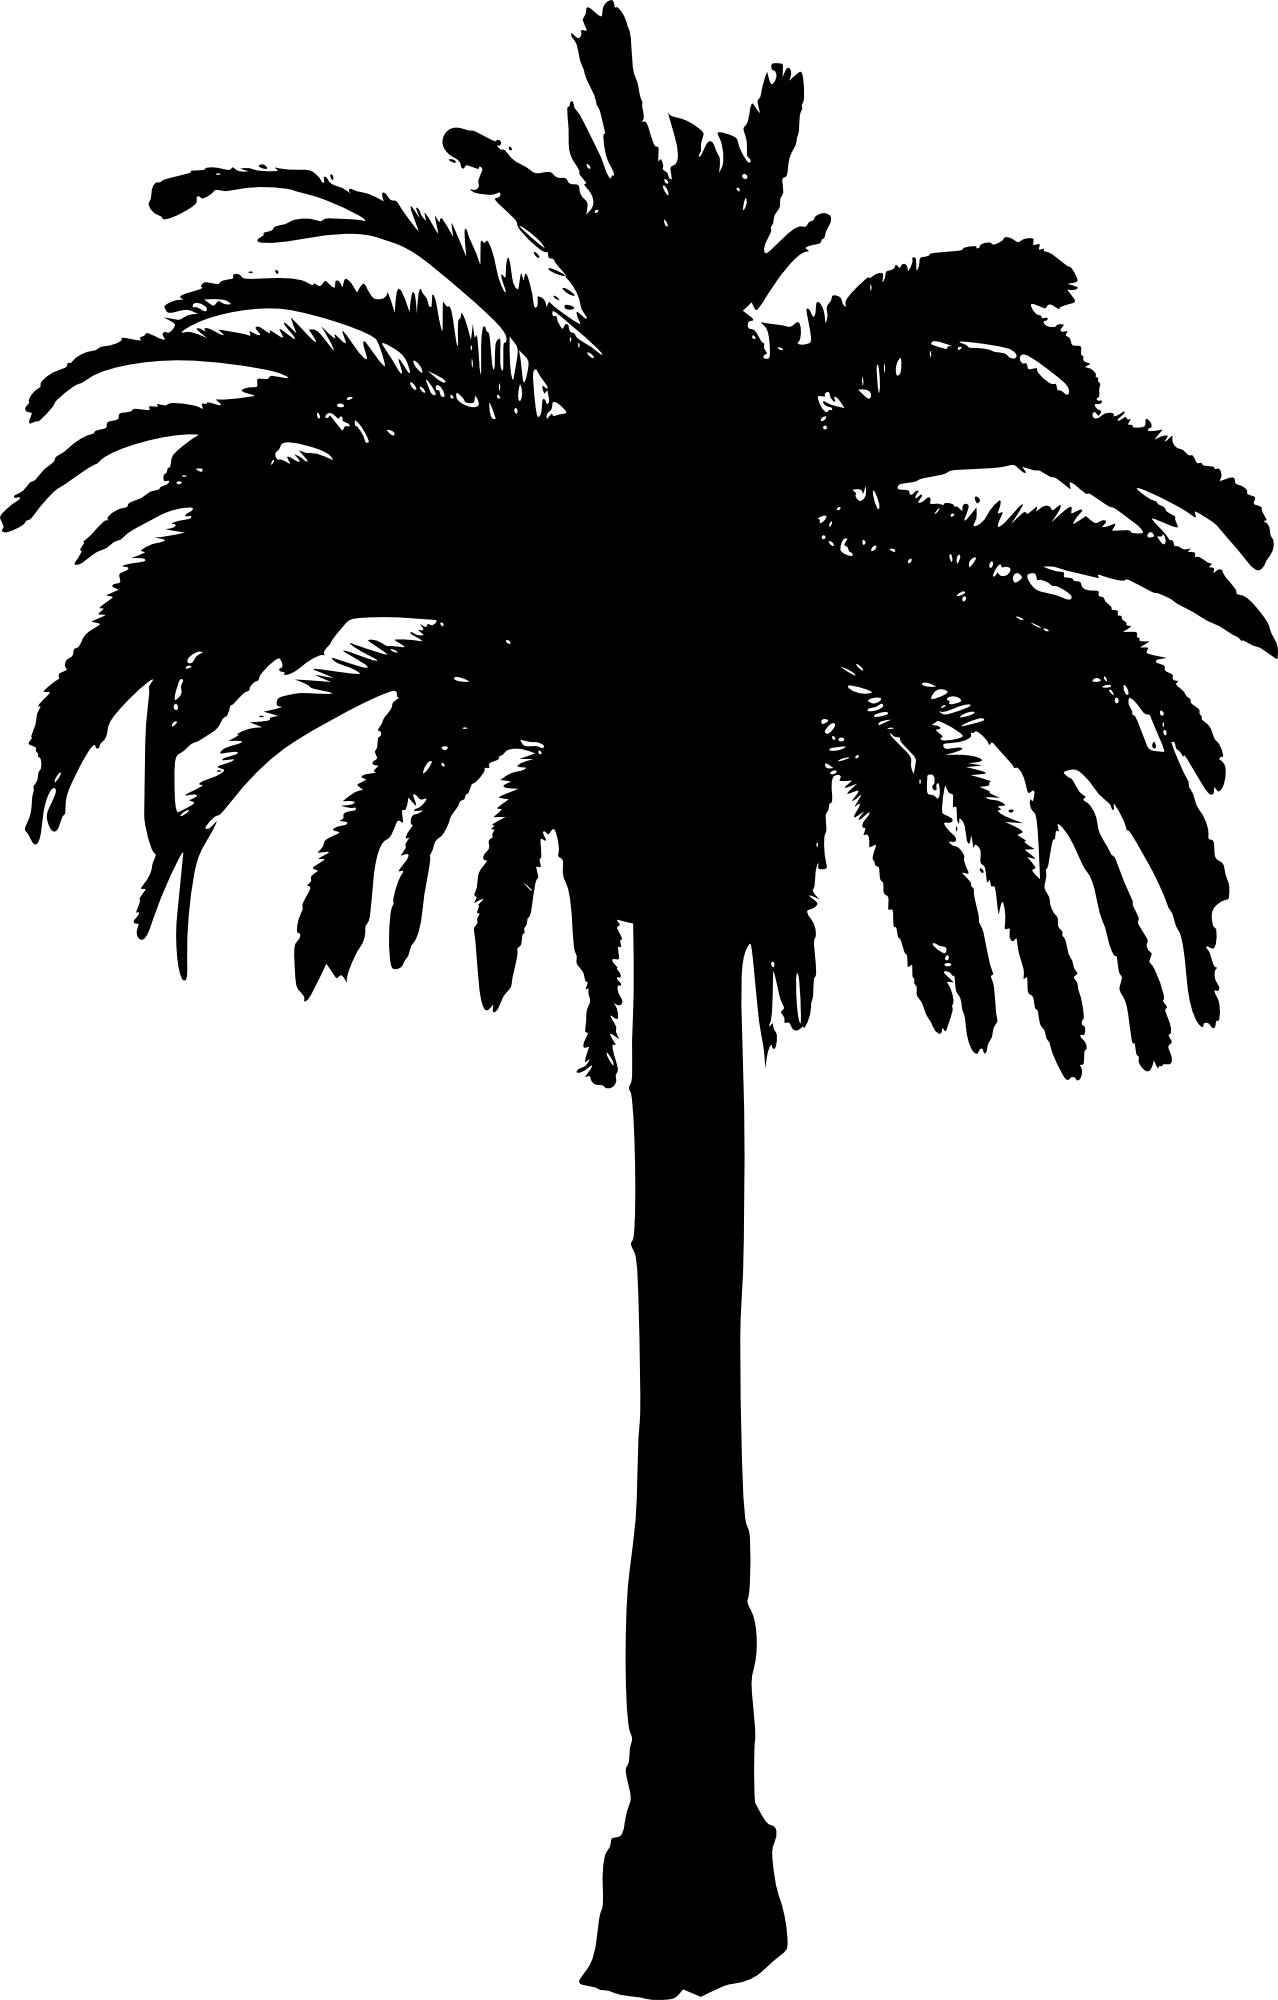 stamp clipart palm tree #144172605